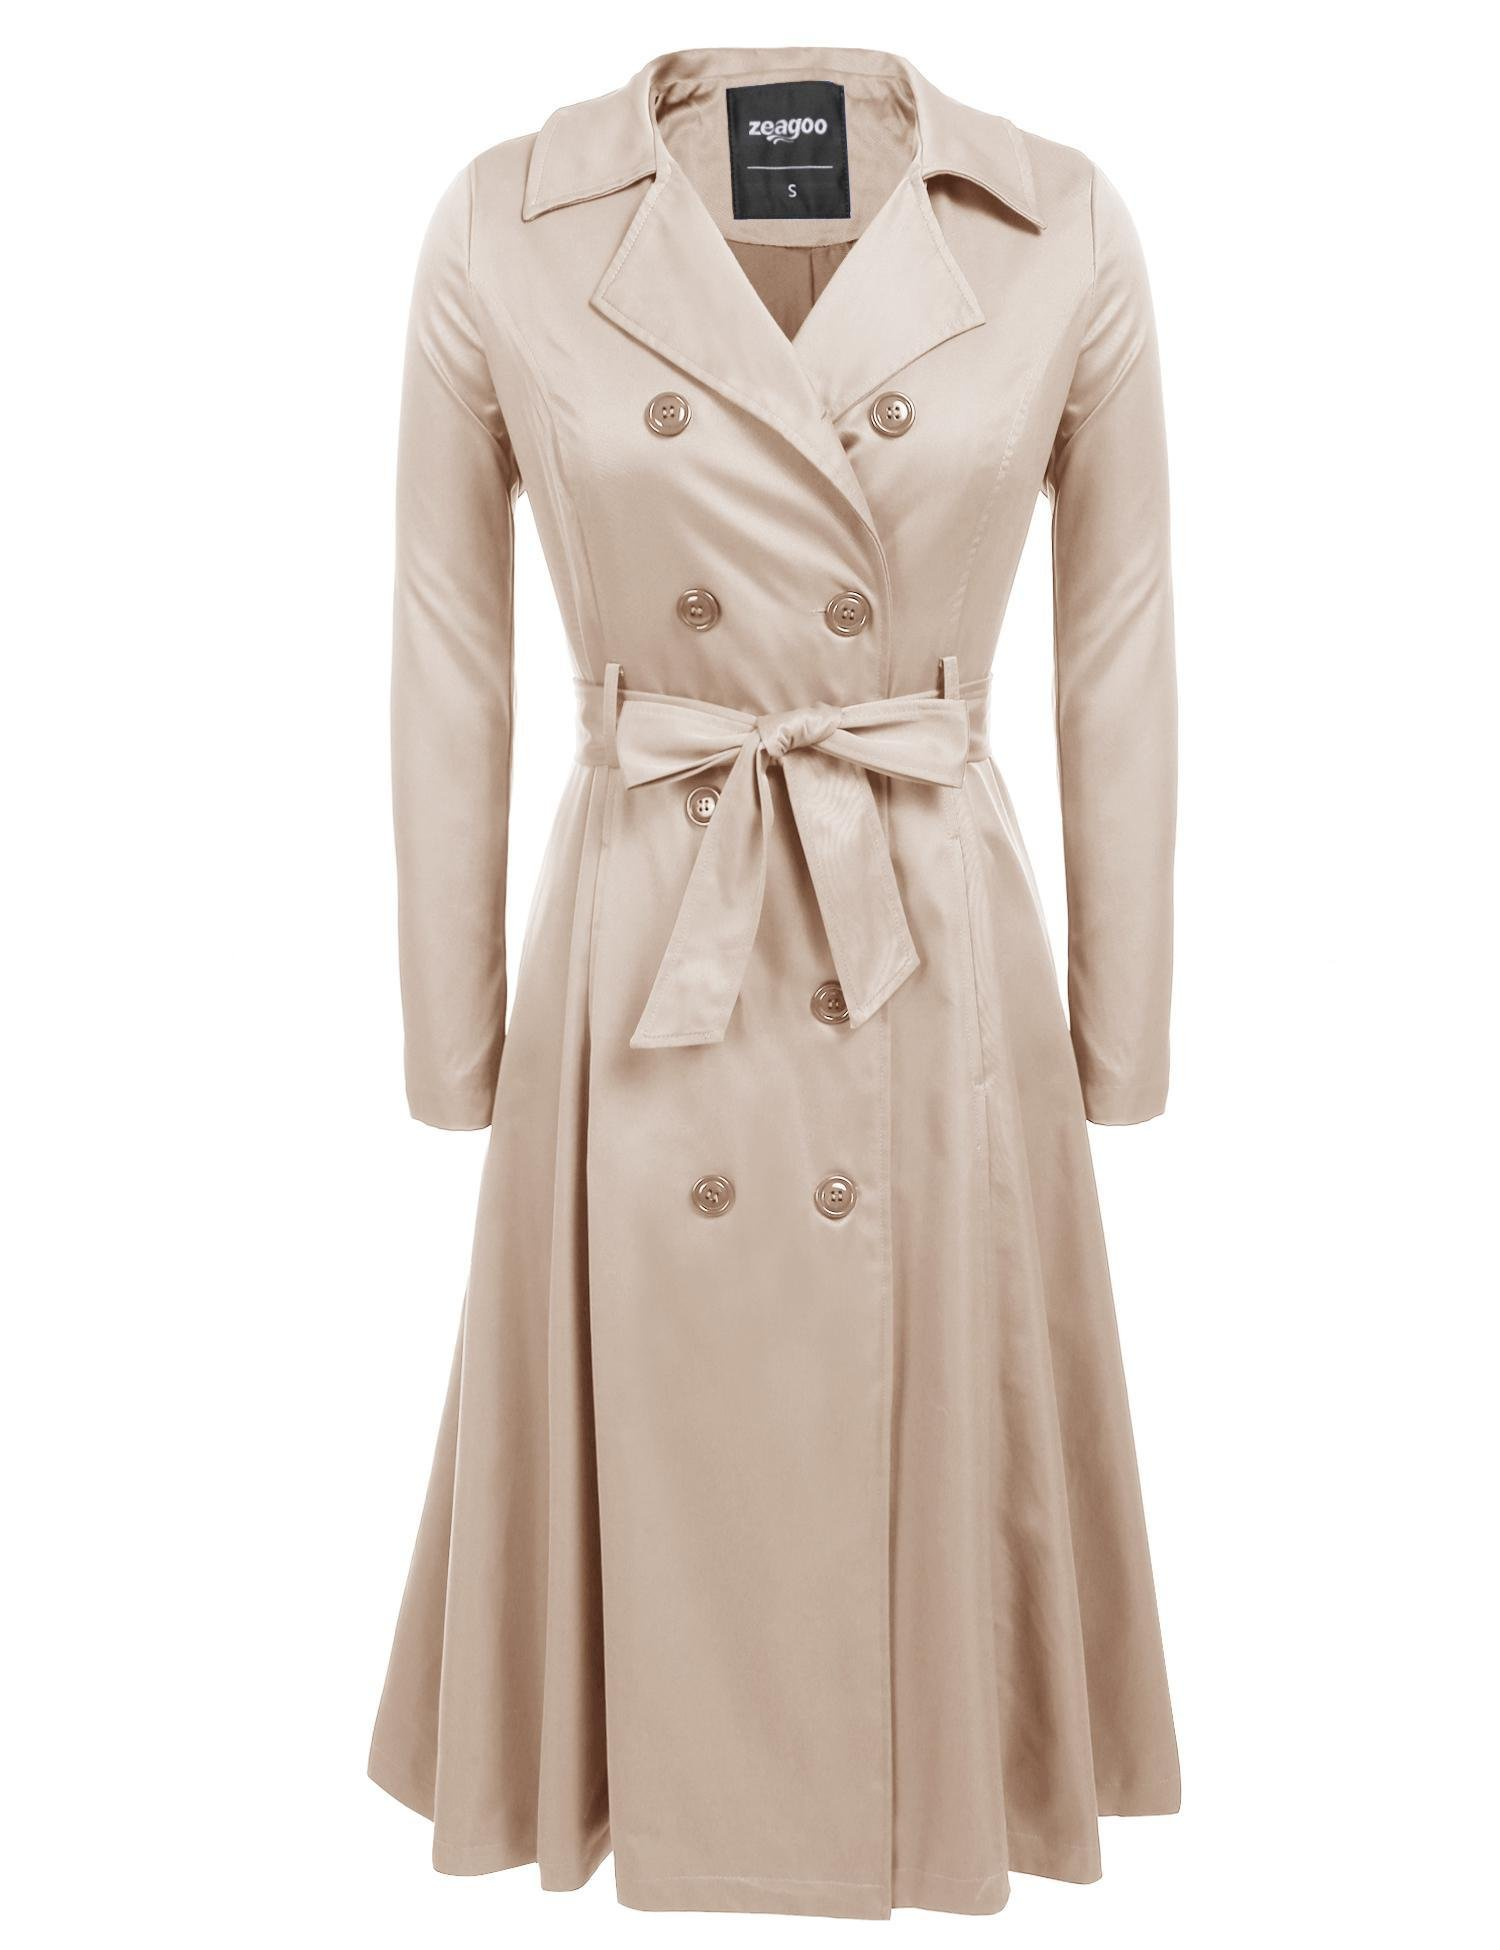 Zeagoo Women's Trench Coats Double-Breasted Long Coat with Belt